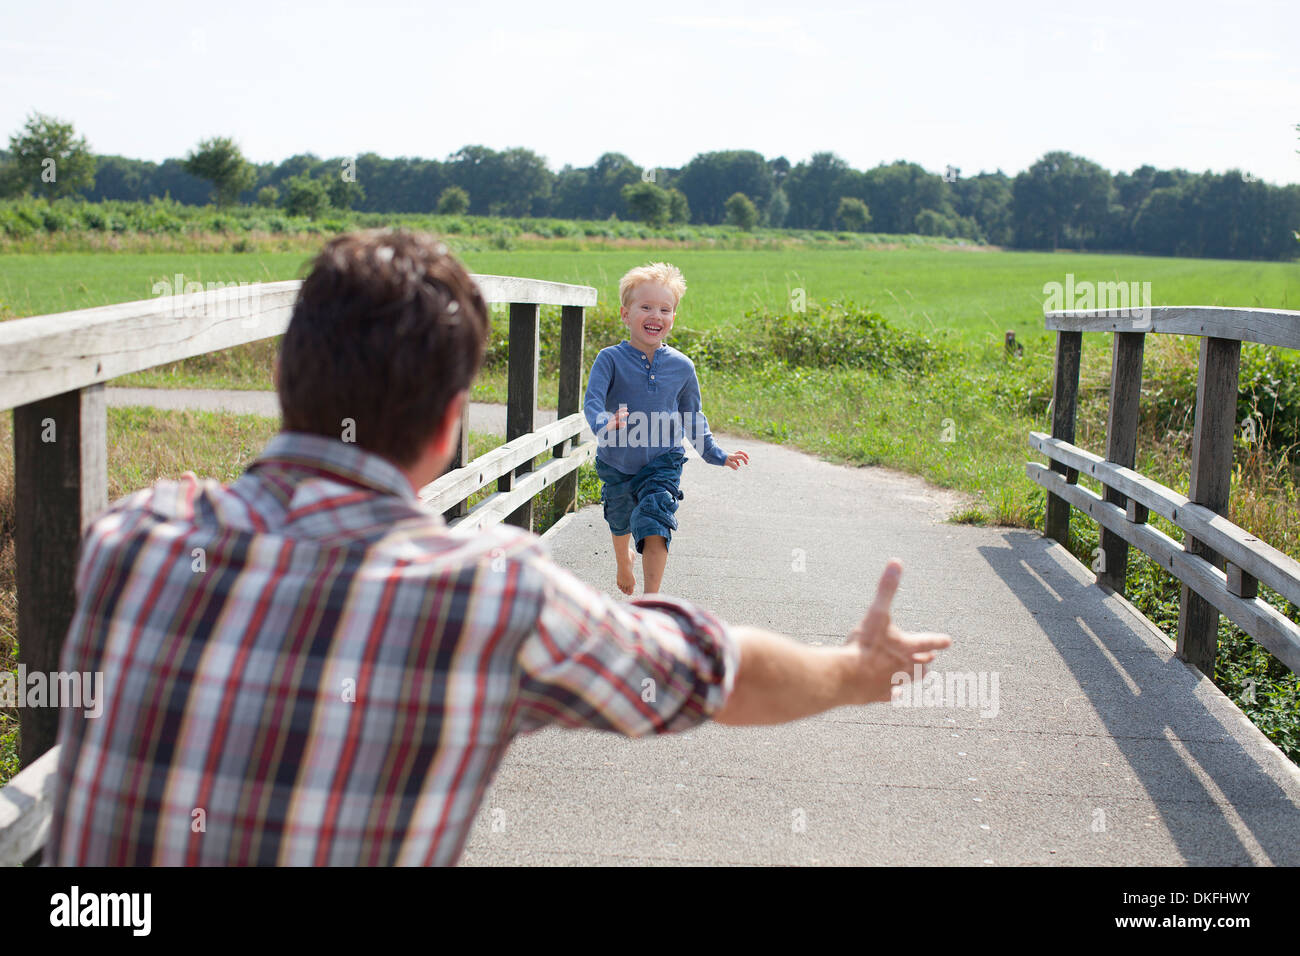 Boy running over wooden bridge towards dad - Stock Image